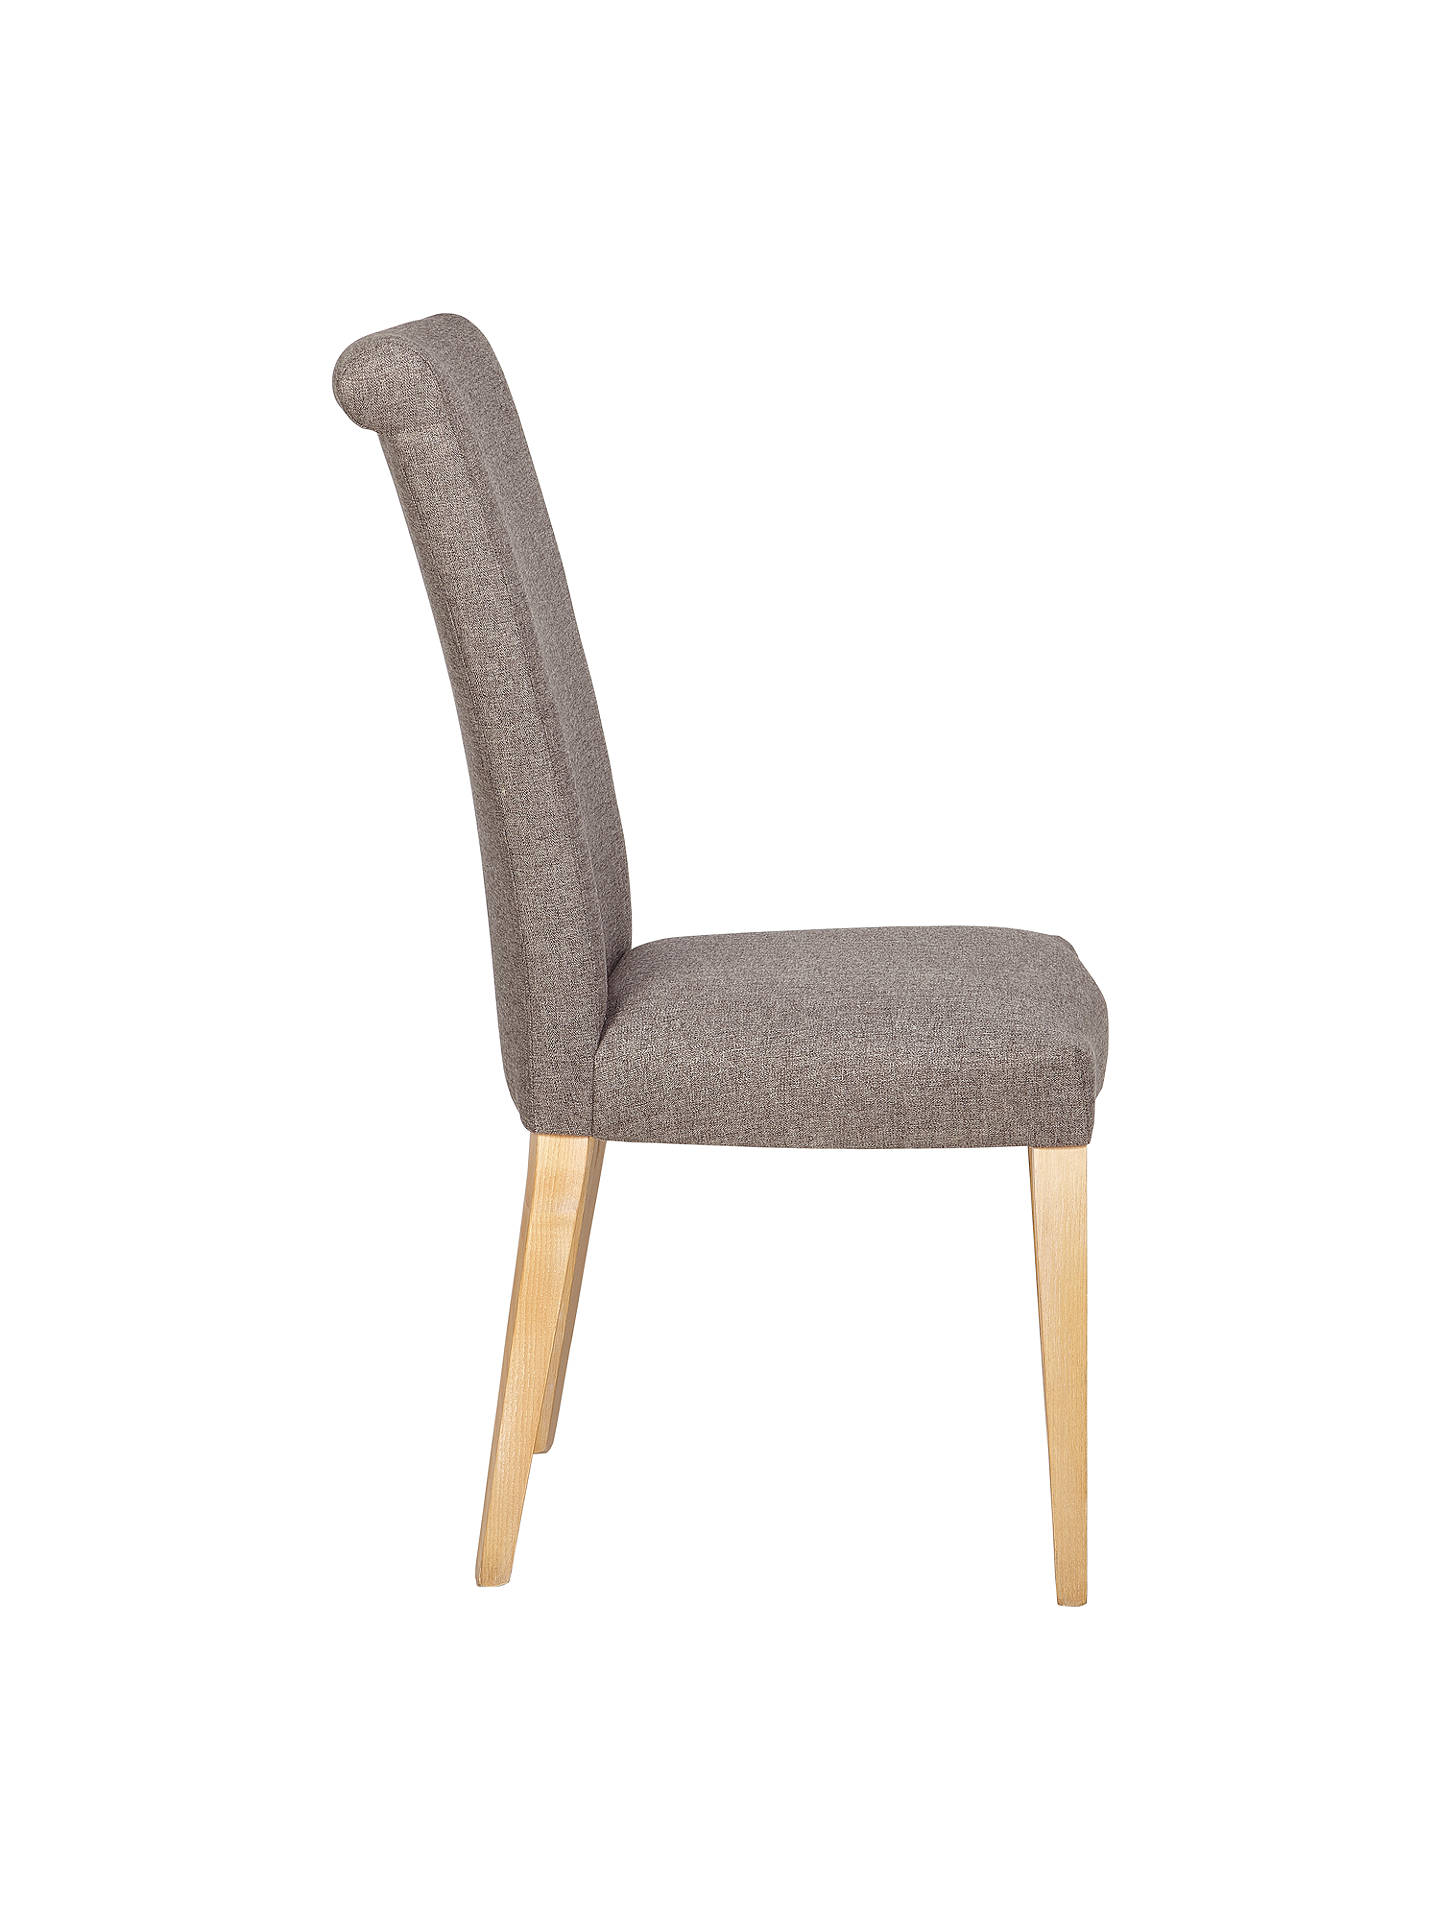 Buy John Lewis & Partners Evelyn High Back Upholstered Dining Chair, Vietto Grey, FSC-Certified (Ash) Online at johnlewis.com